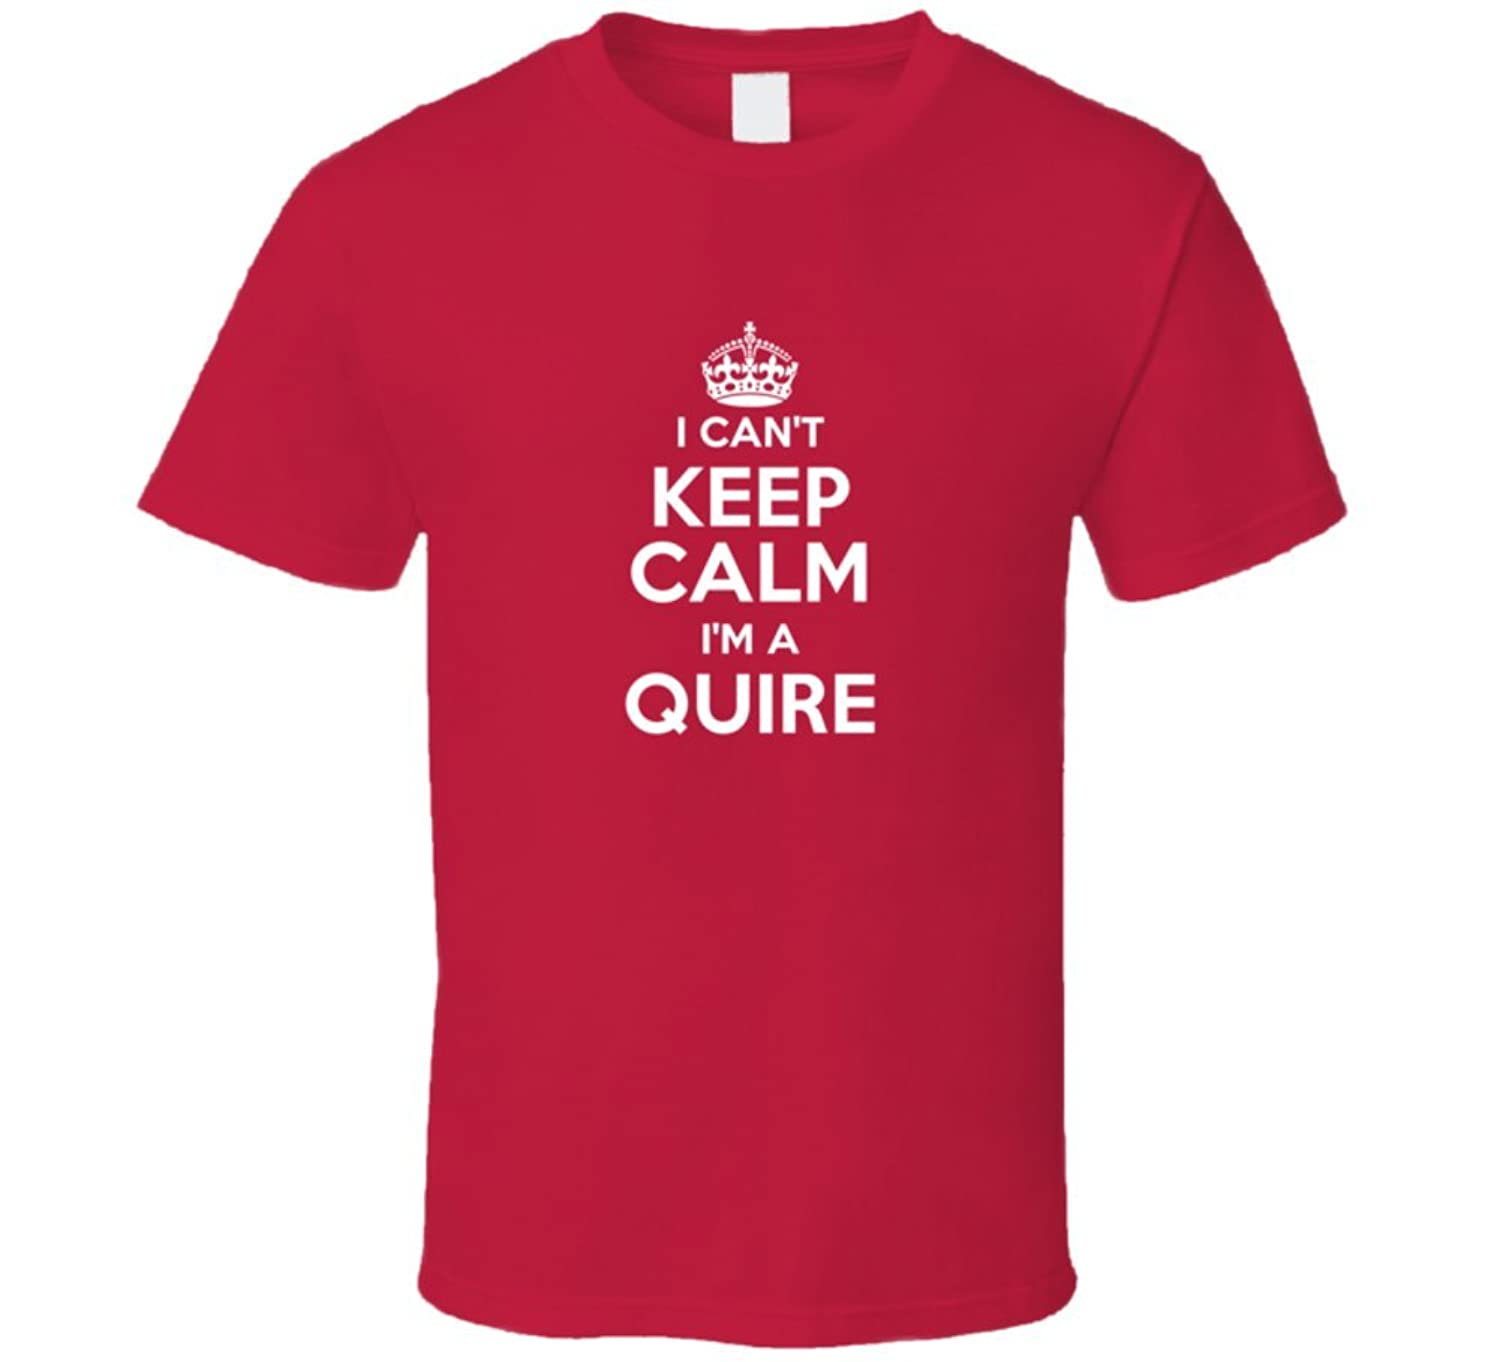 Quire I Can't Keep Calm Parody T Shirt фляга s quire камуфляж 270 мл